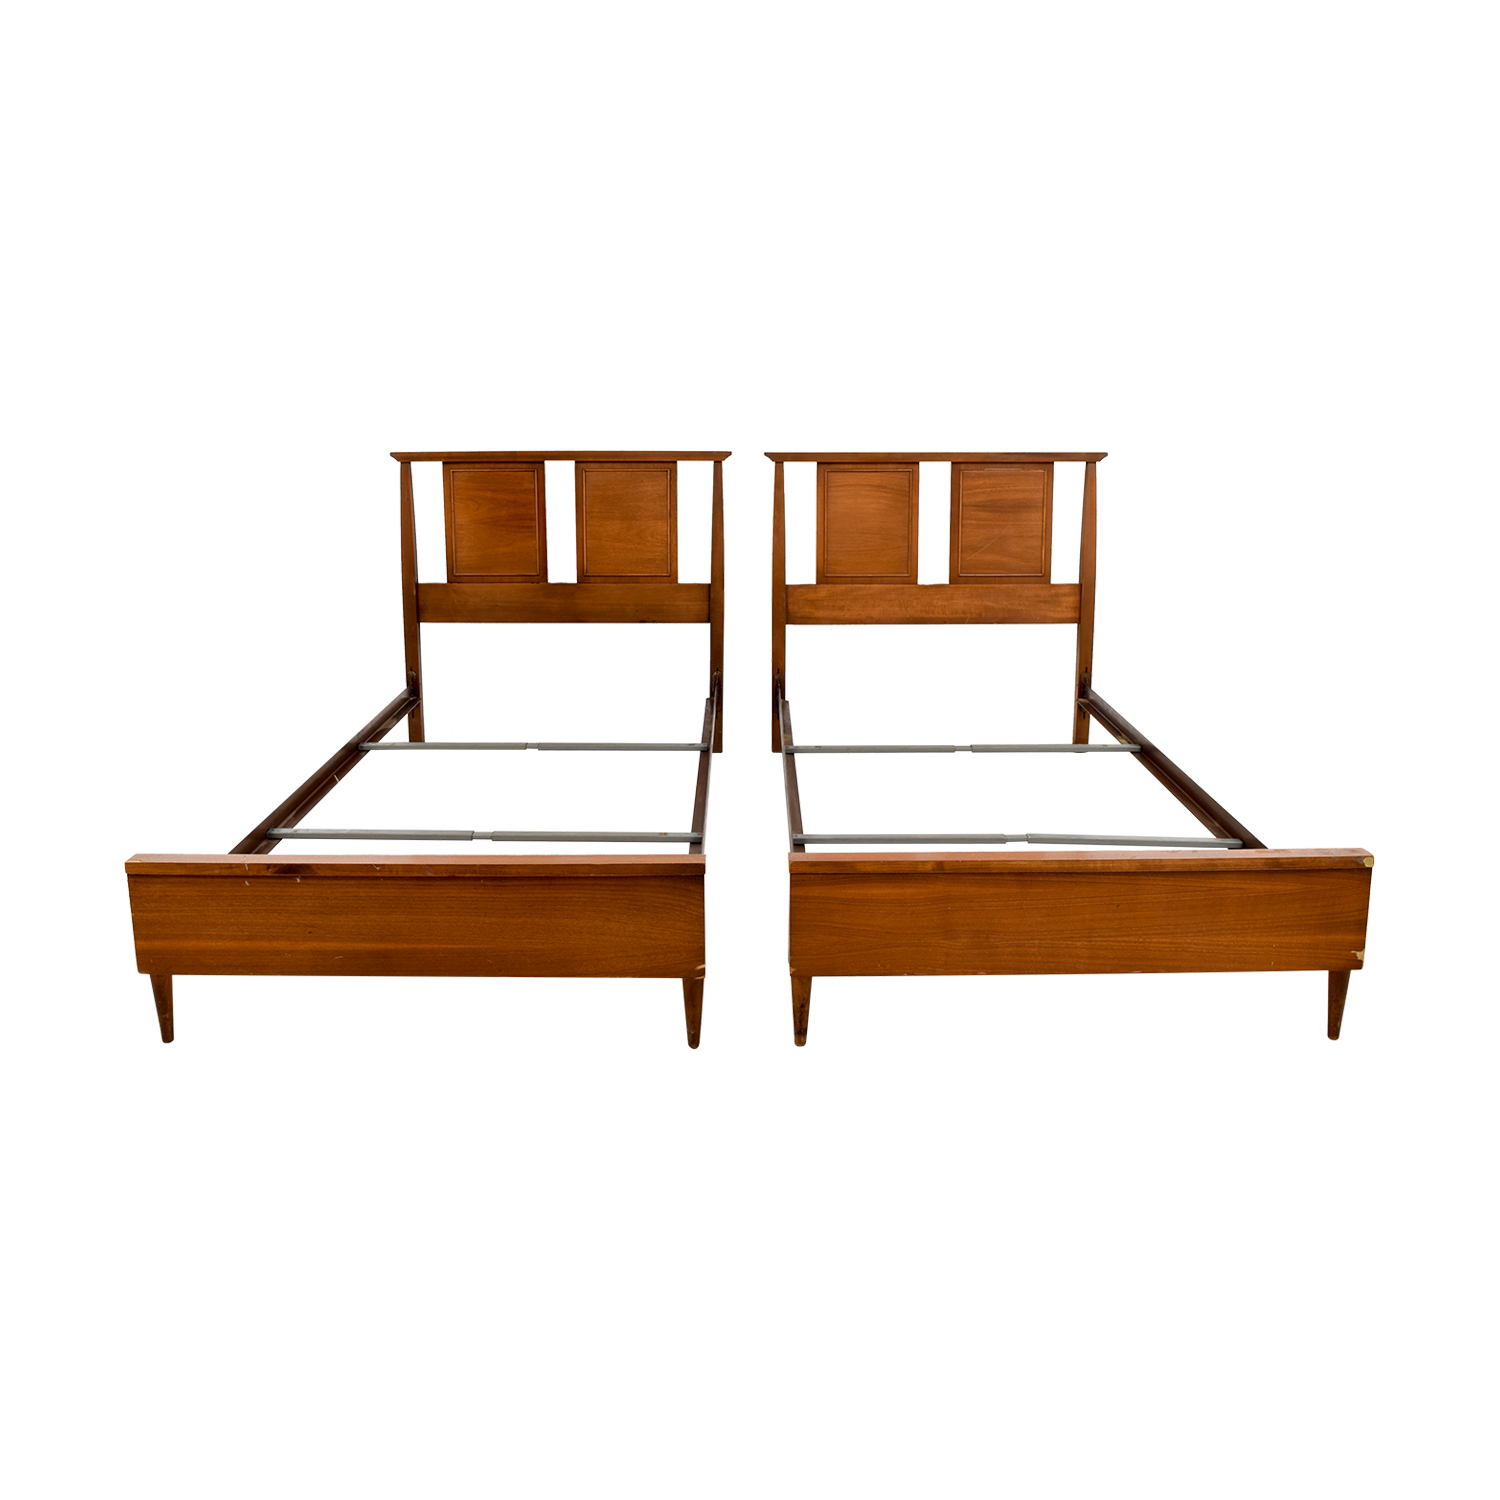 Seaman's Seaman's Twin Bed Frames second hand